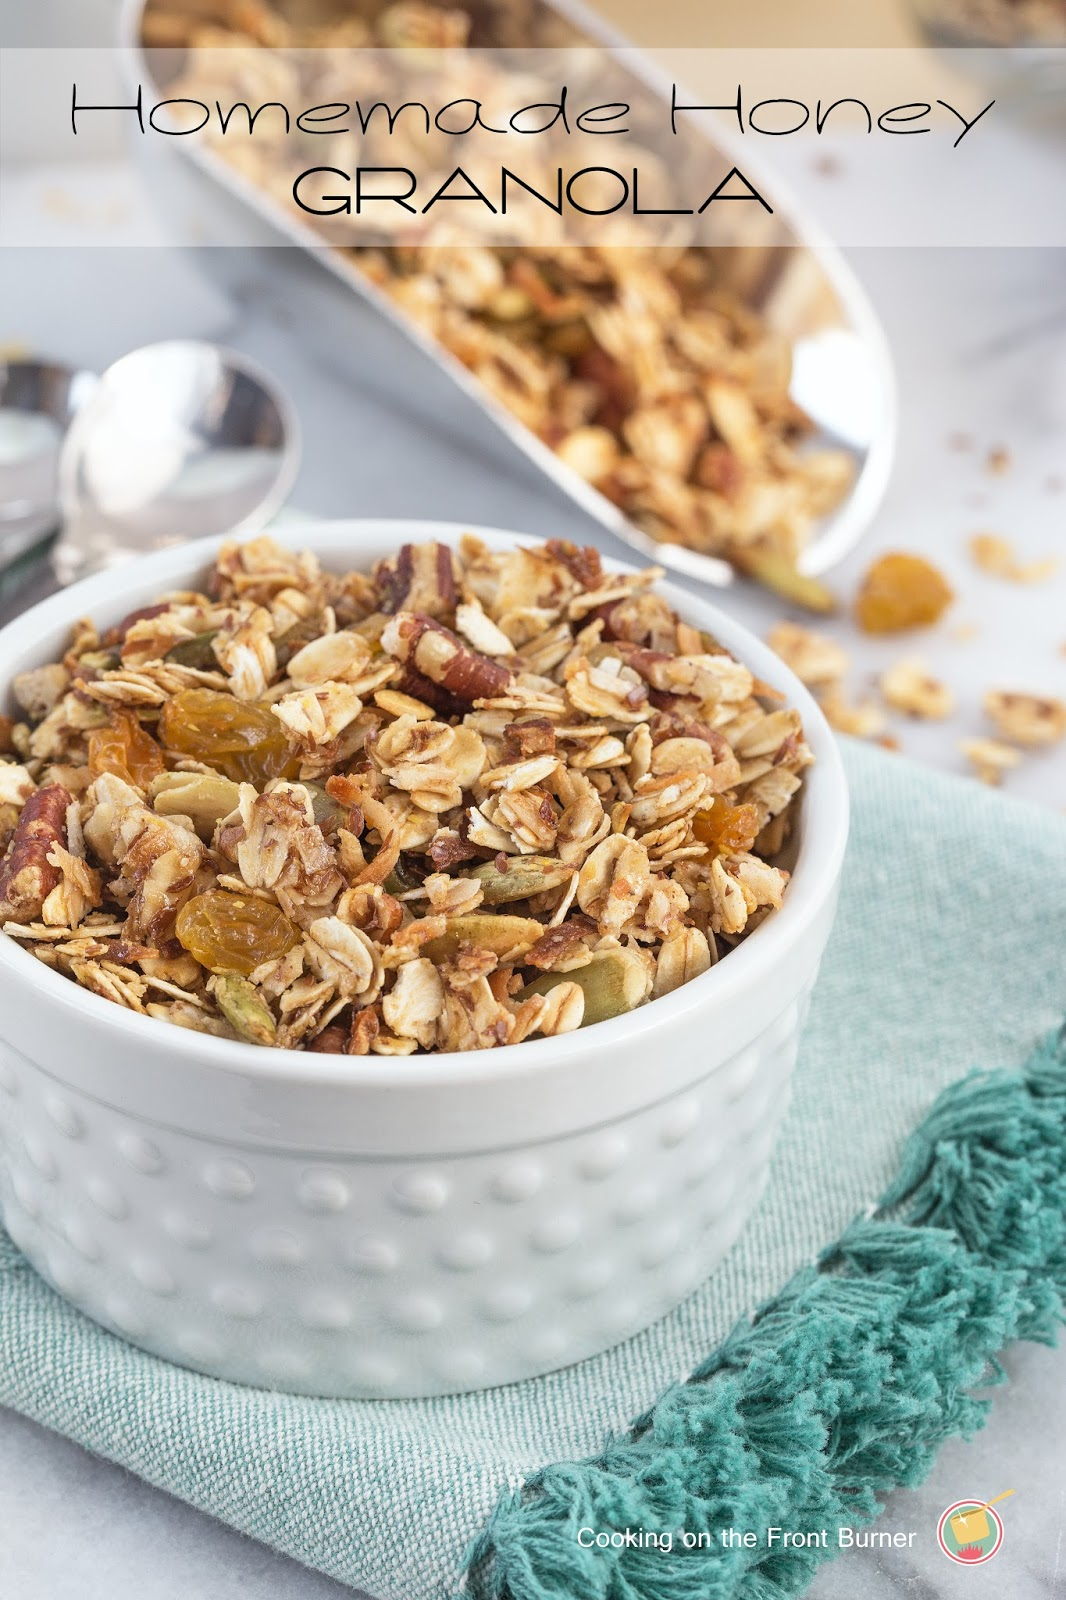 Homemade Honey Granola | Cooking on the Front Burner